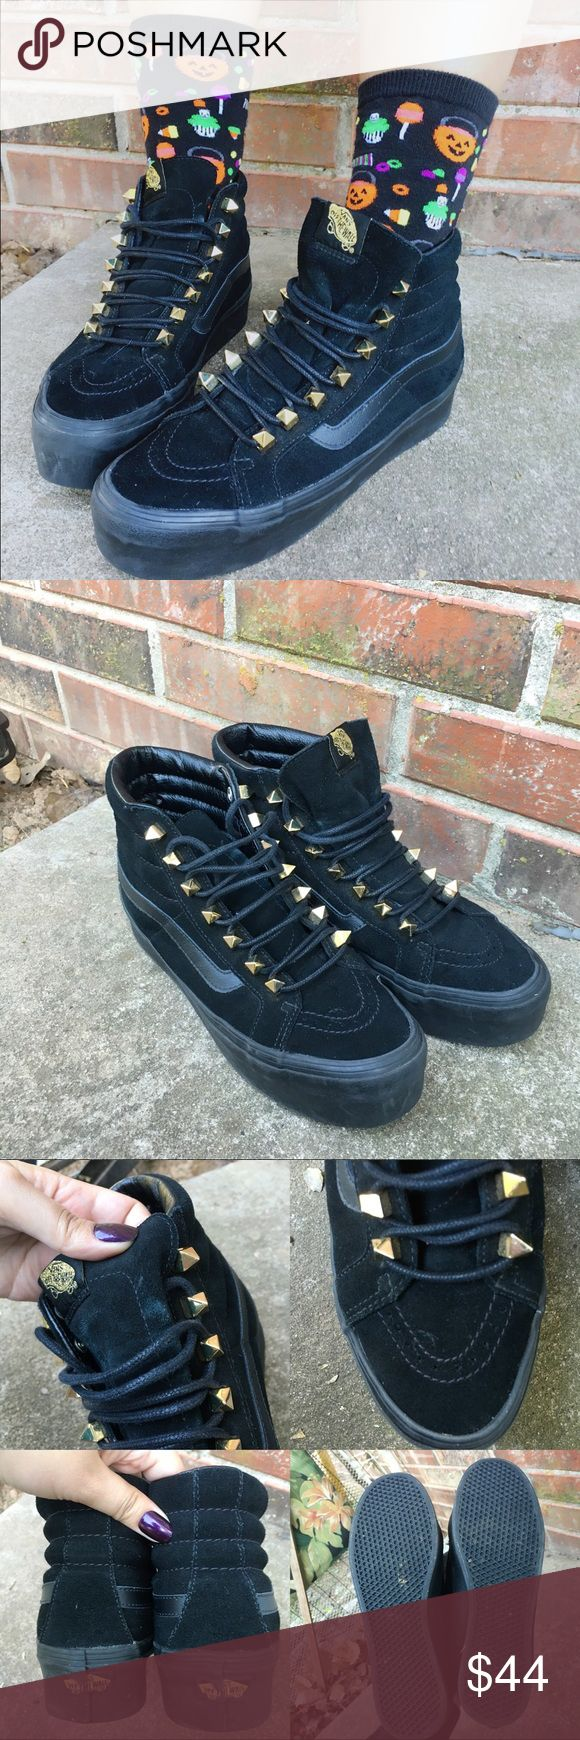 "black vans w gold studs black leather vans w/ gold pointy studs!  sk8-hi 2"" platform. suuper comfy! worn a handful of times, great condition just a few scuffs. ⭐️womens 8.5 men's 7⭐️ Vans Shoes Platforms"